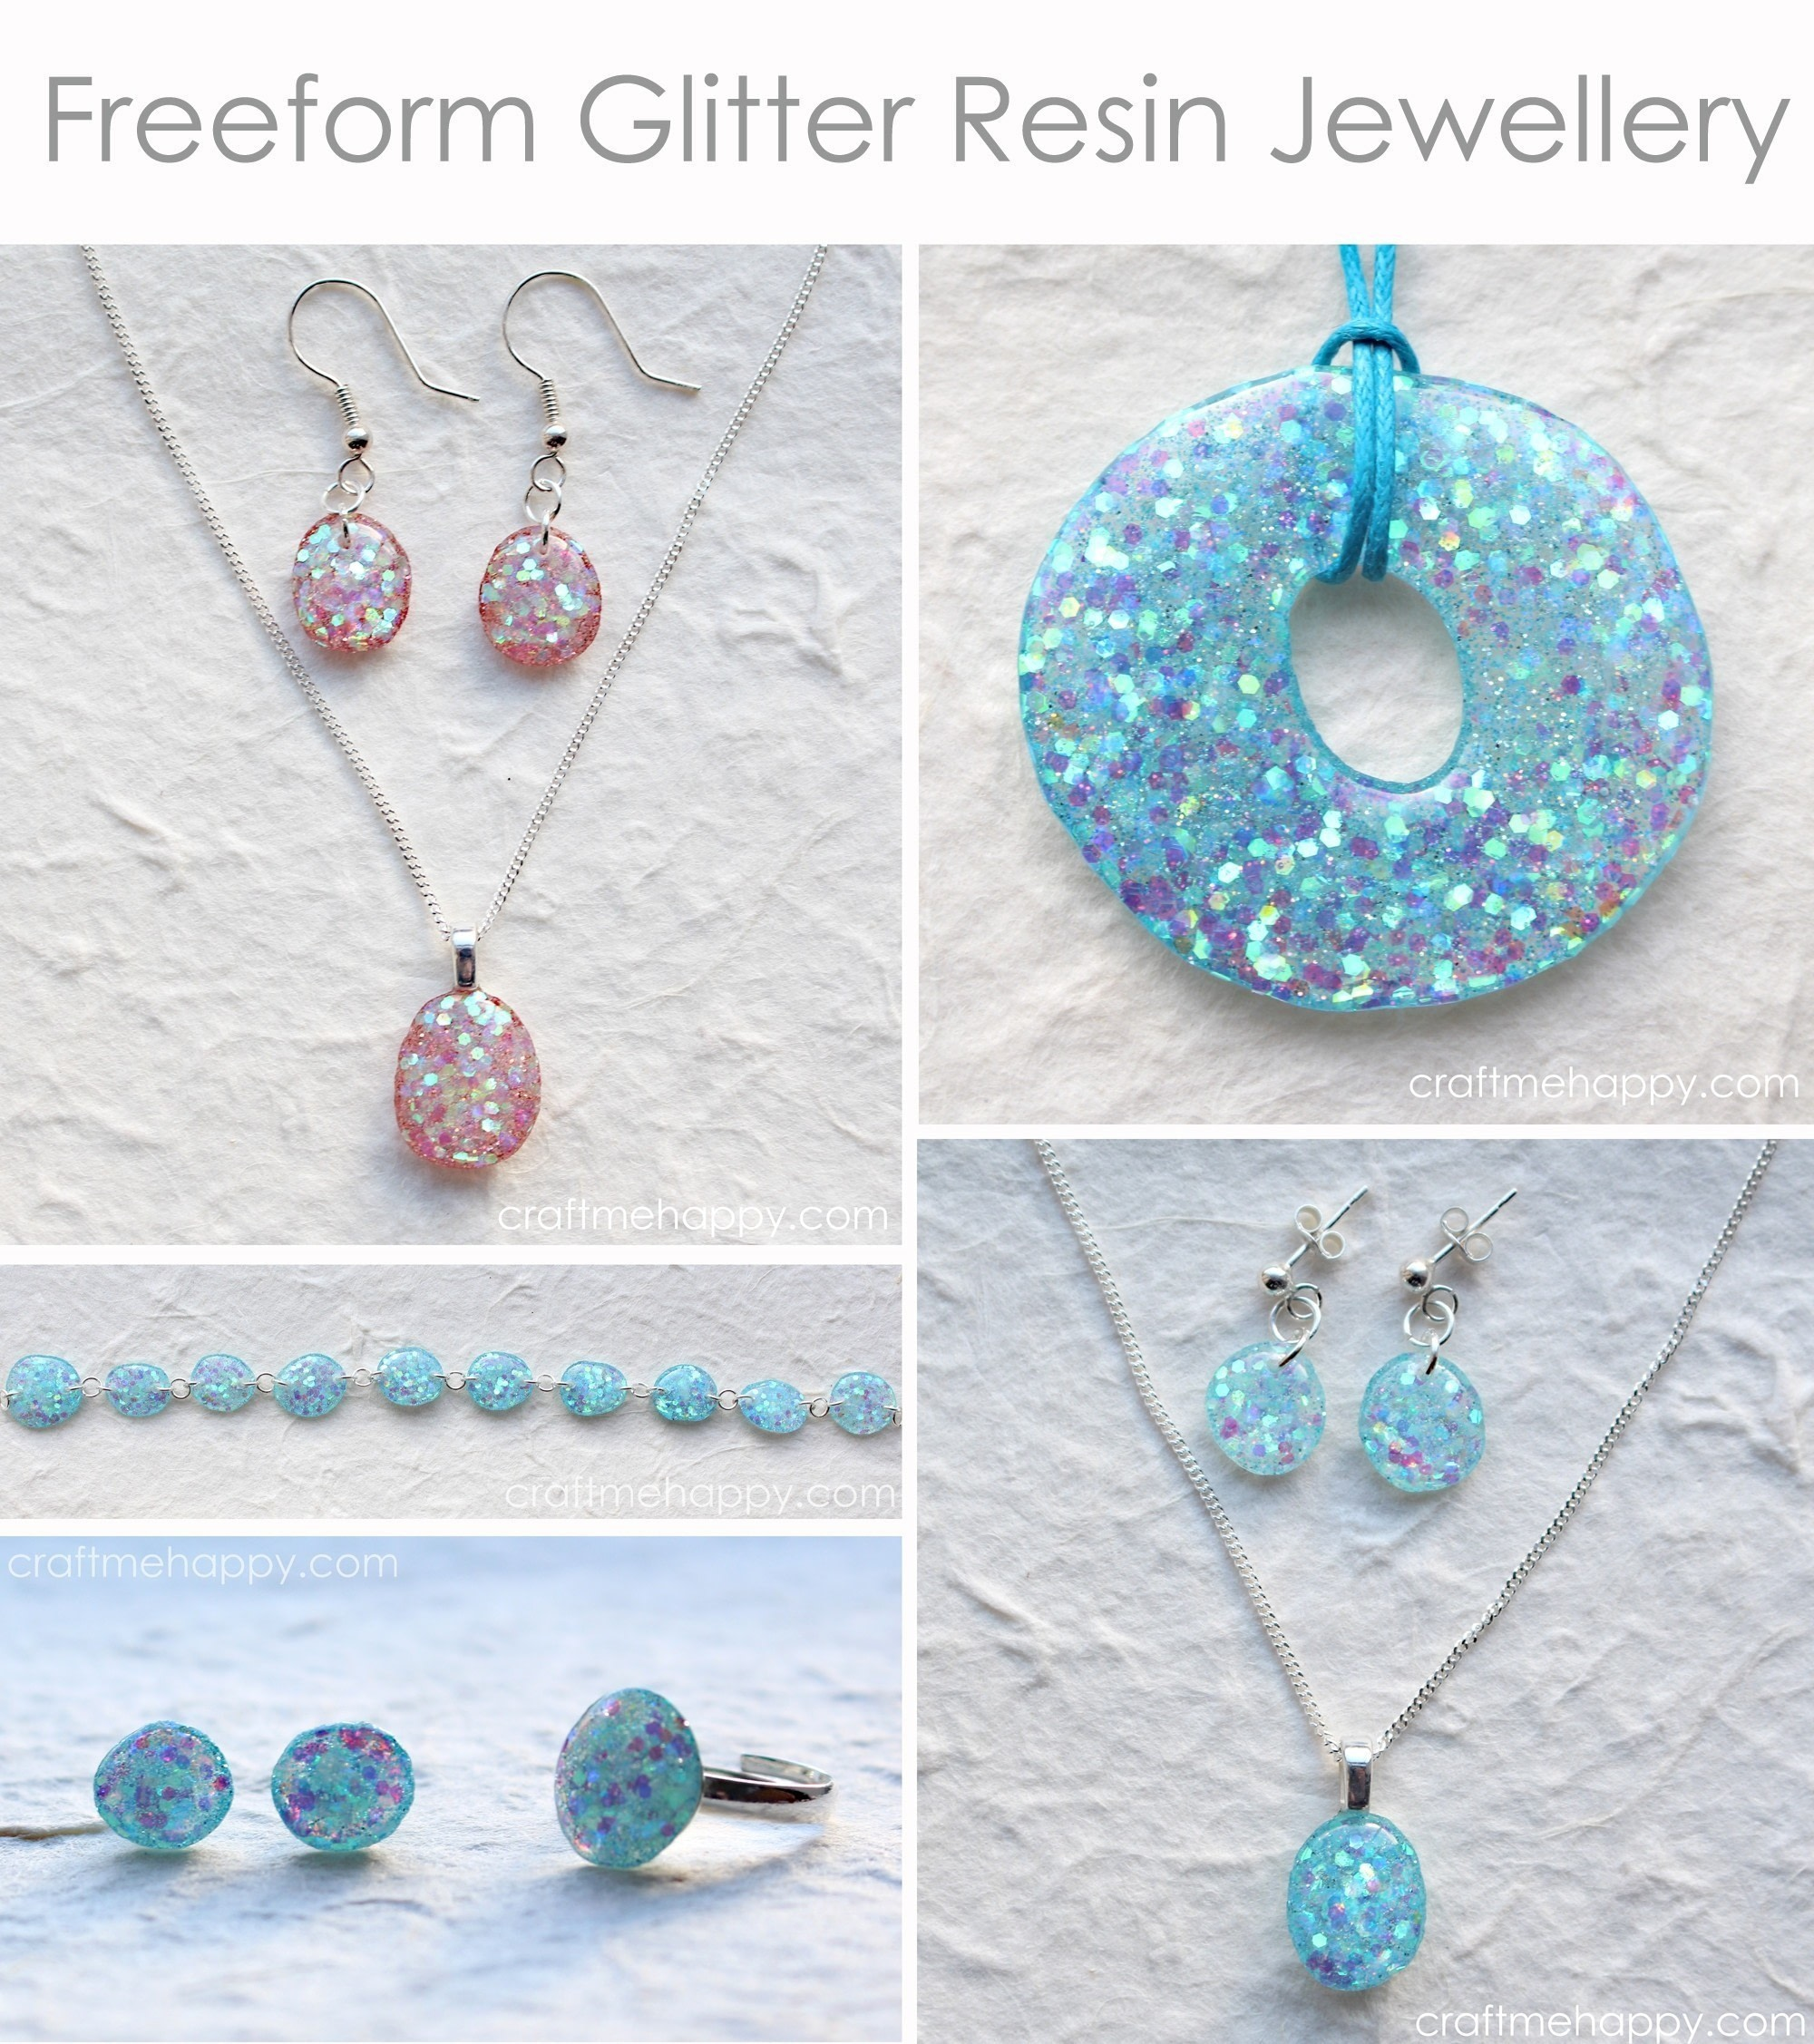 15 resin jewelry diys to try your hand at diy glitter resin jewelry solutioingenieria